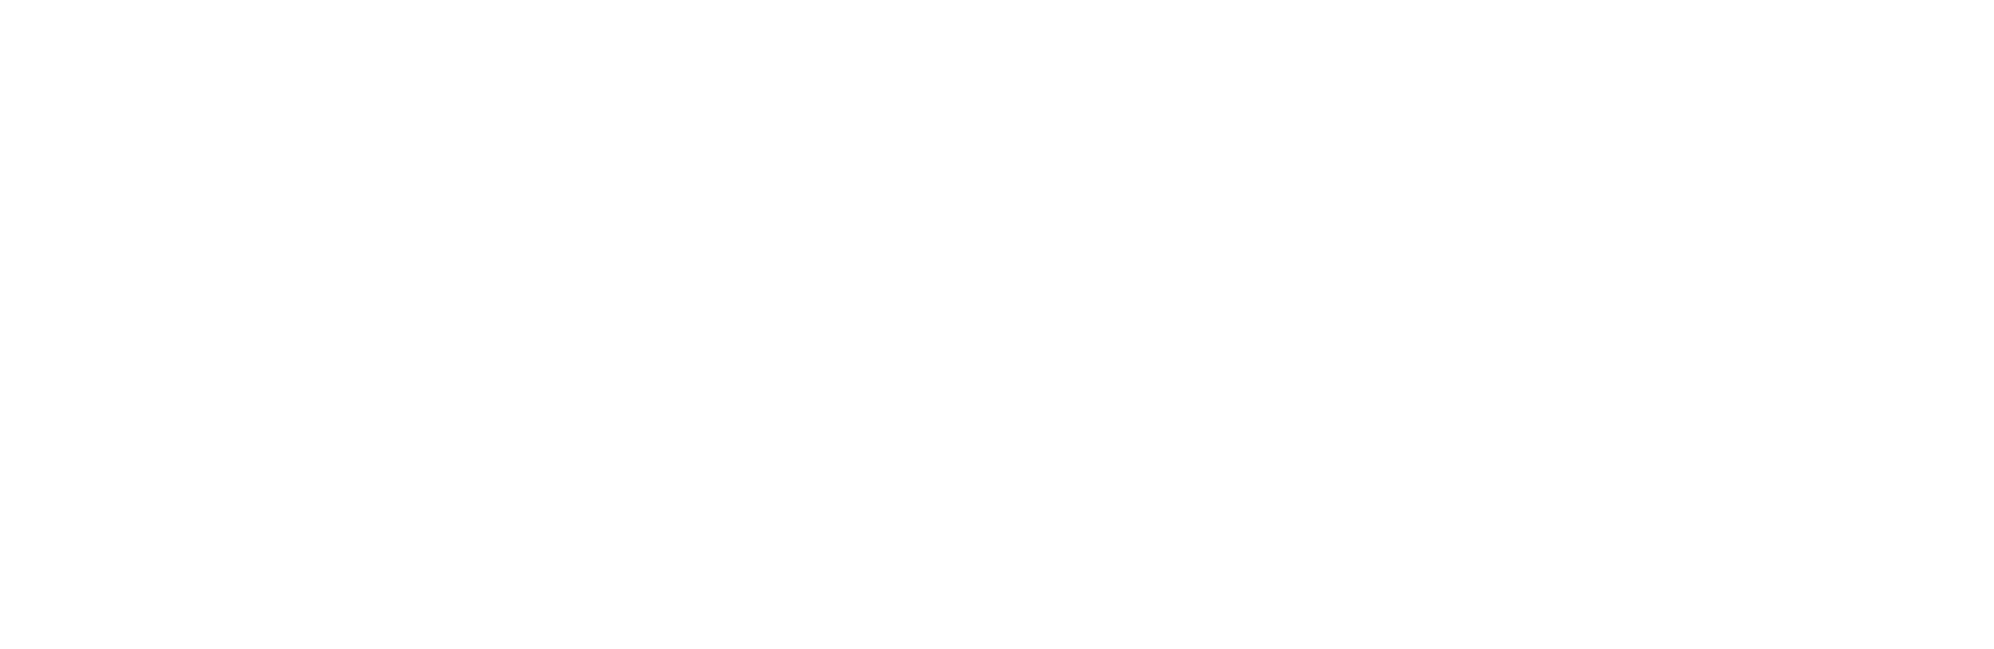 CommonLook AI Cloud - Fast, Accurate and Intelligent. Patent-Pending and Proprietary. It's time for the future of PDF accessibility.